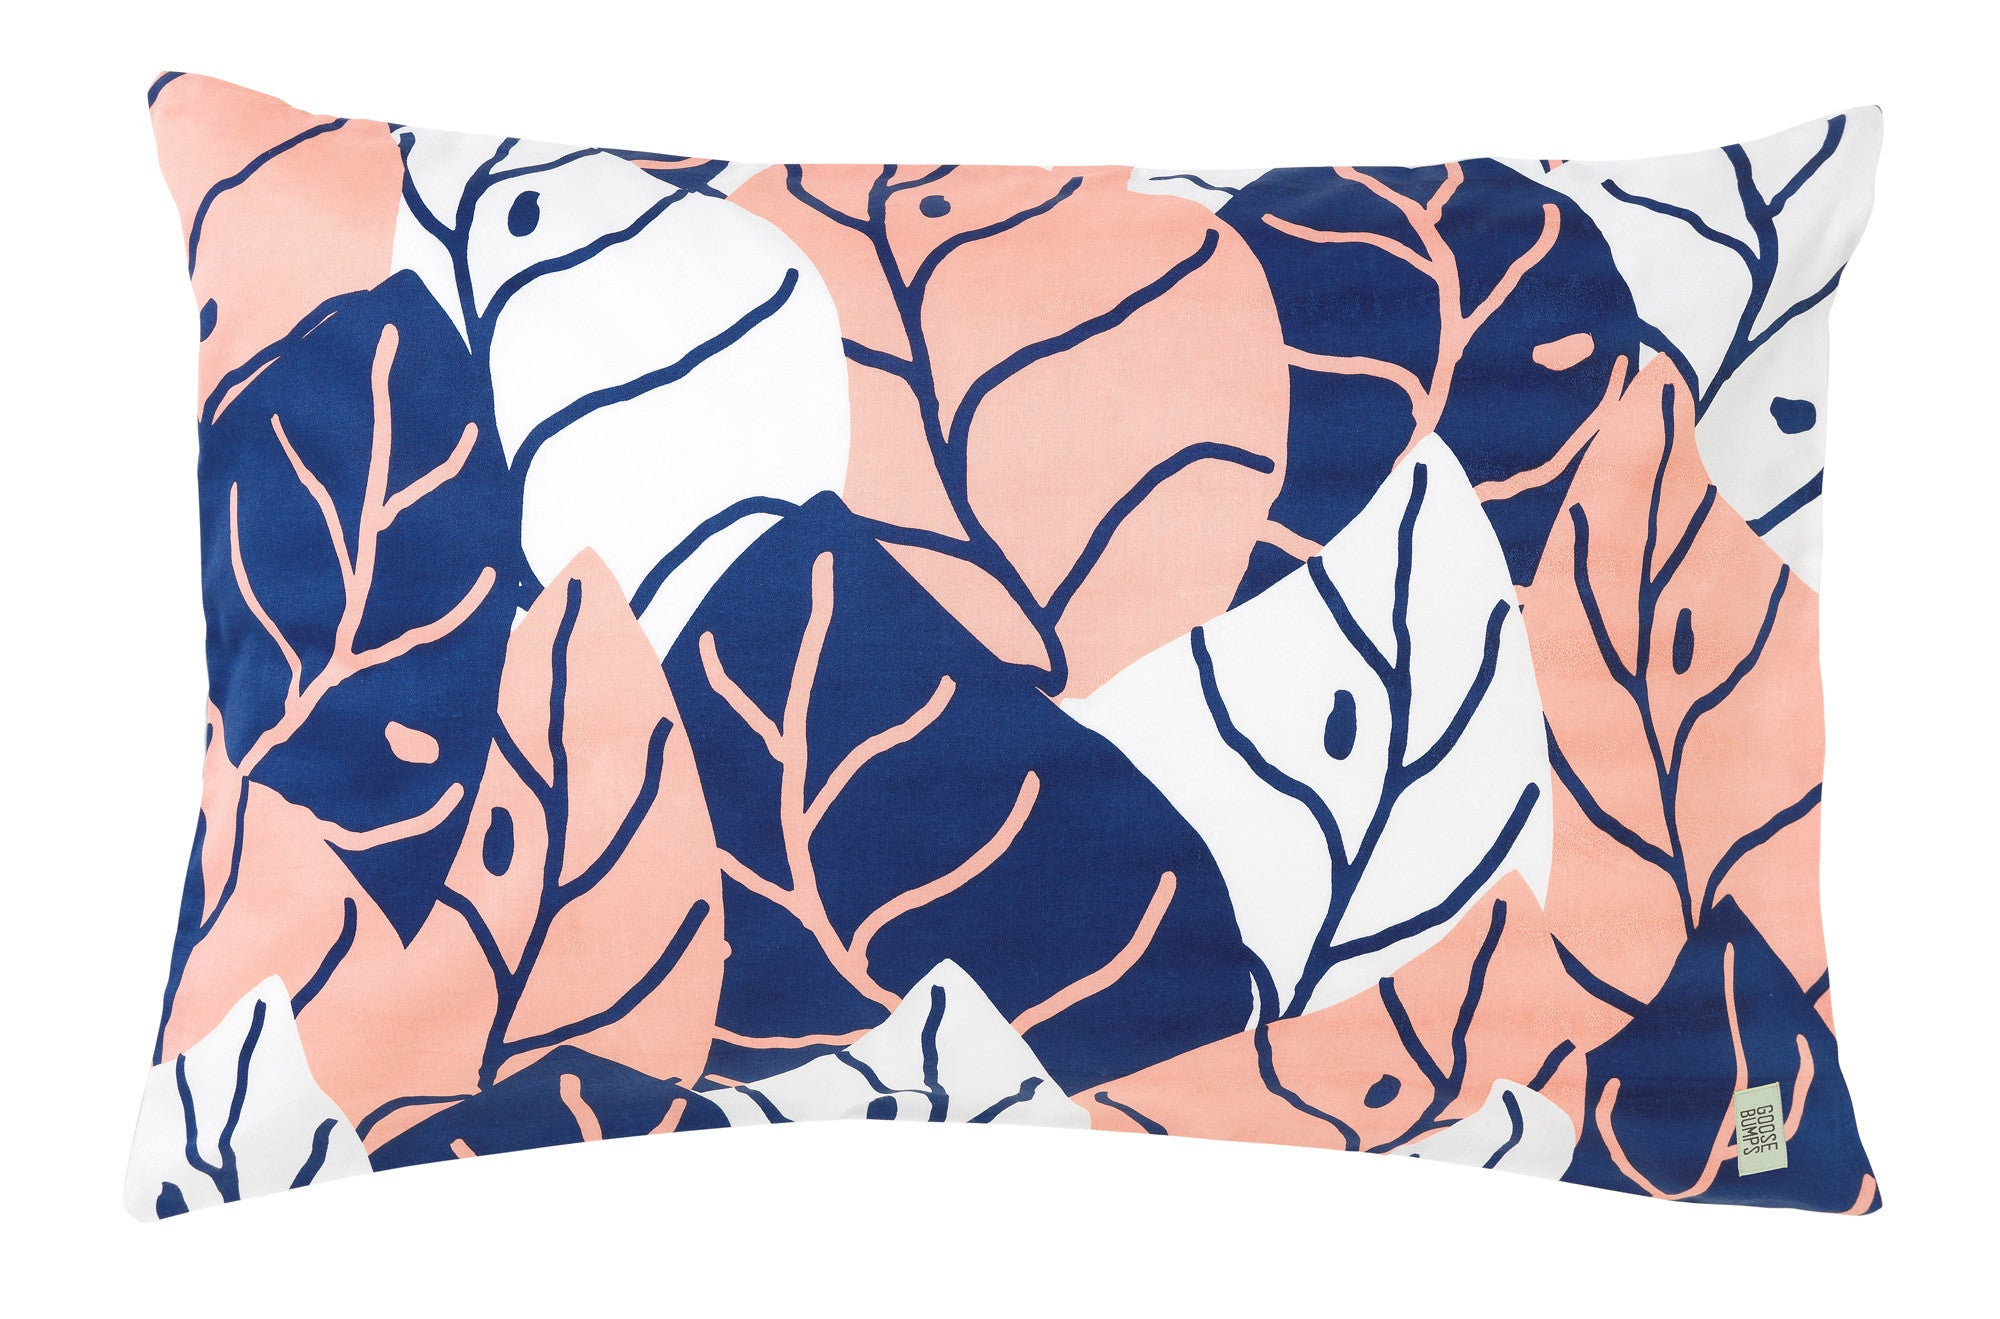 Dusk Till Dawn Pillowcase (Set of two)